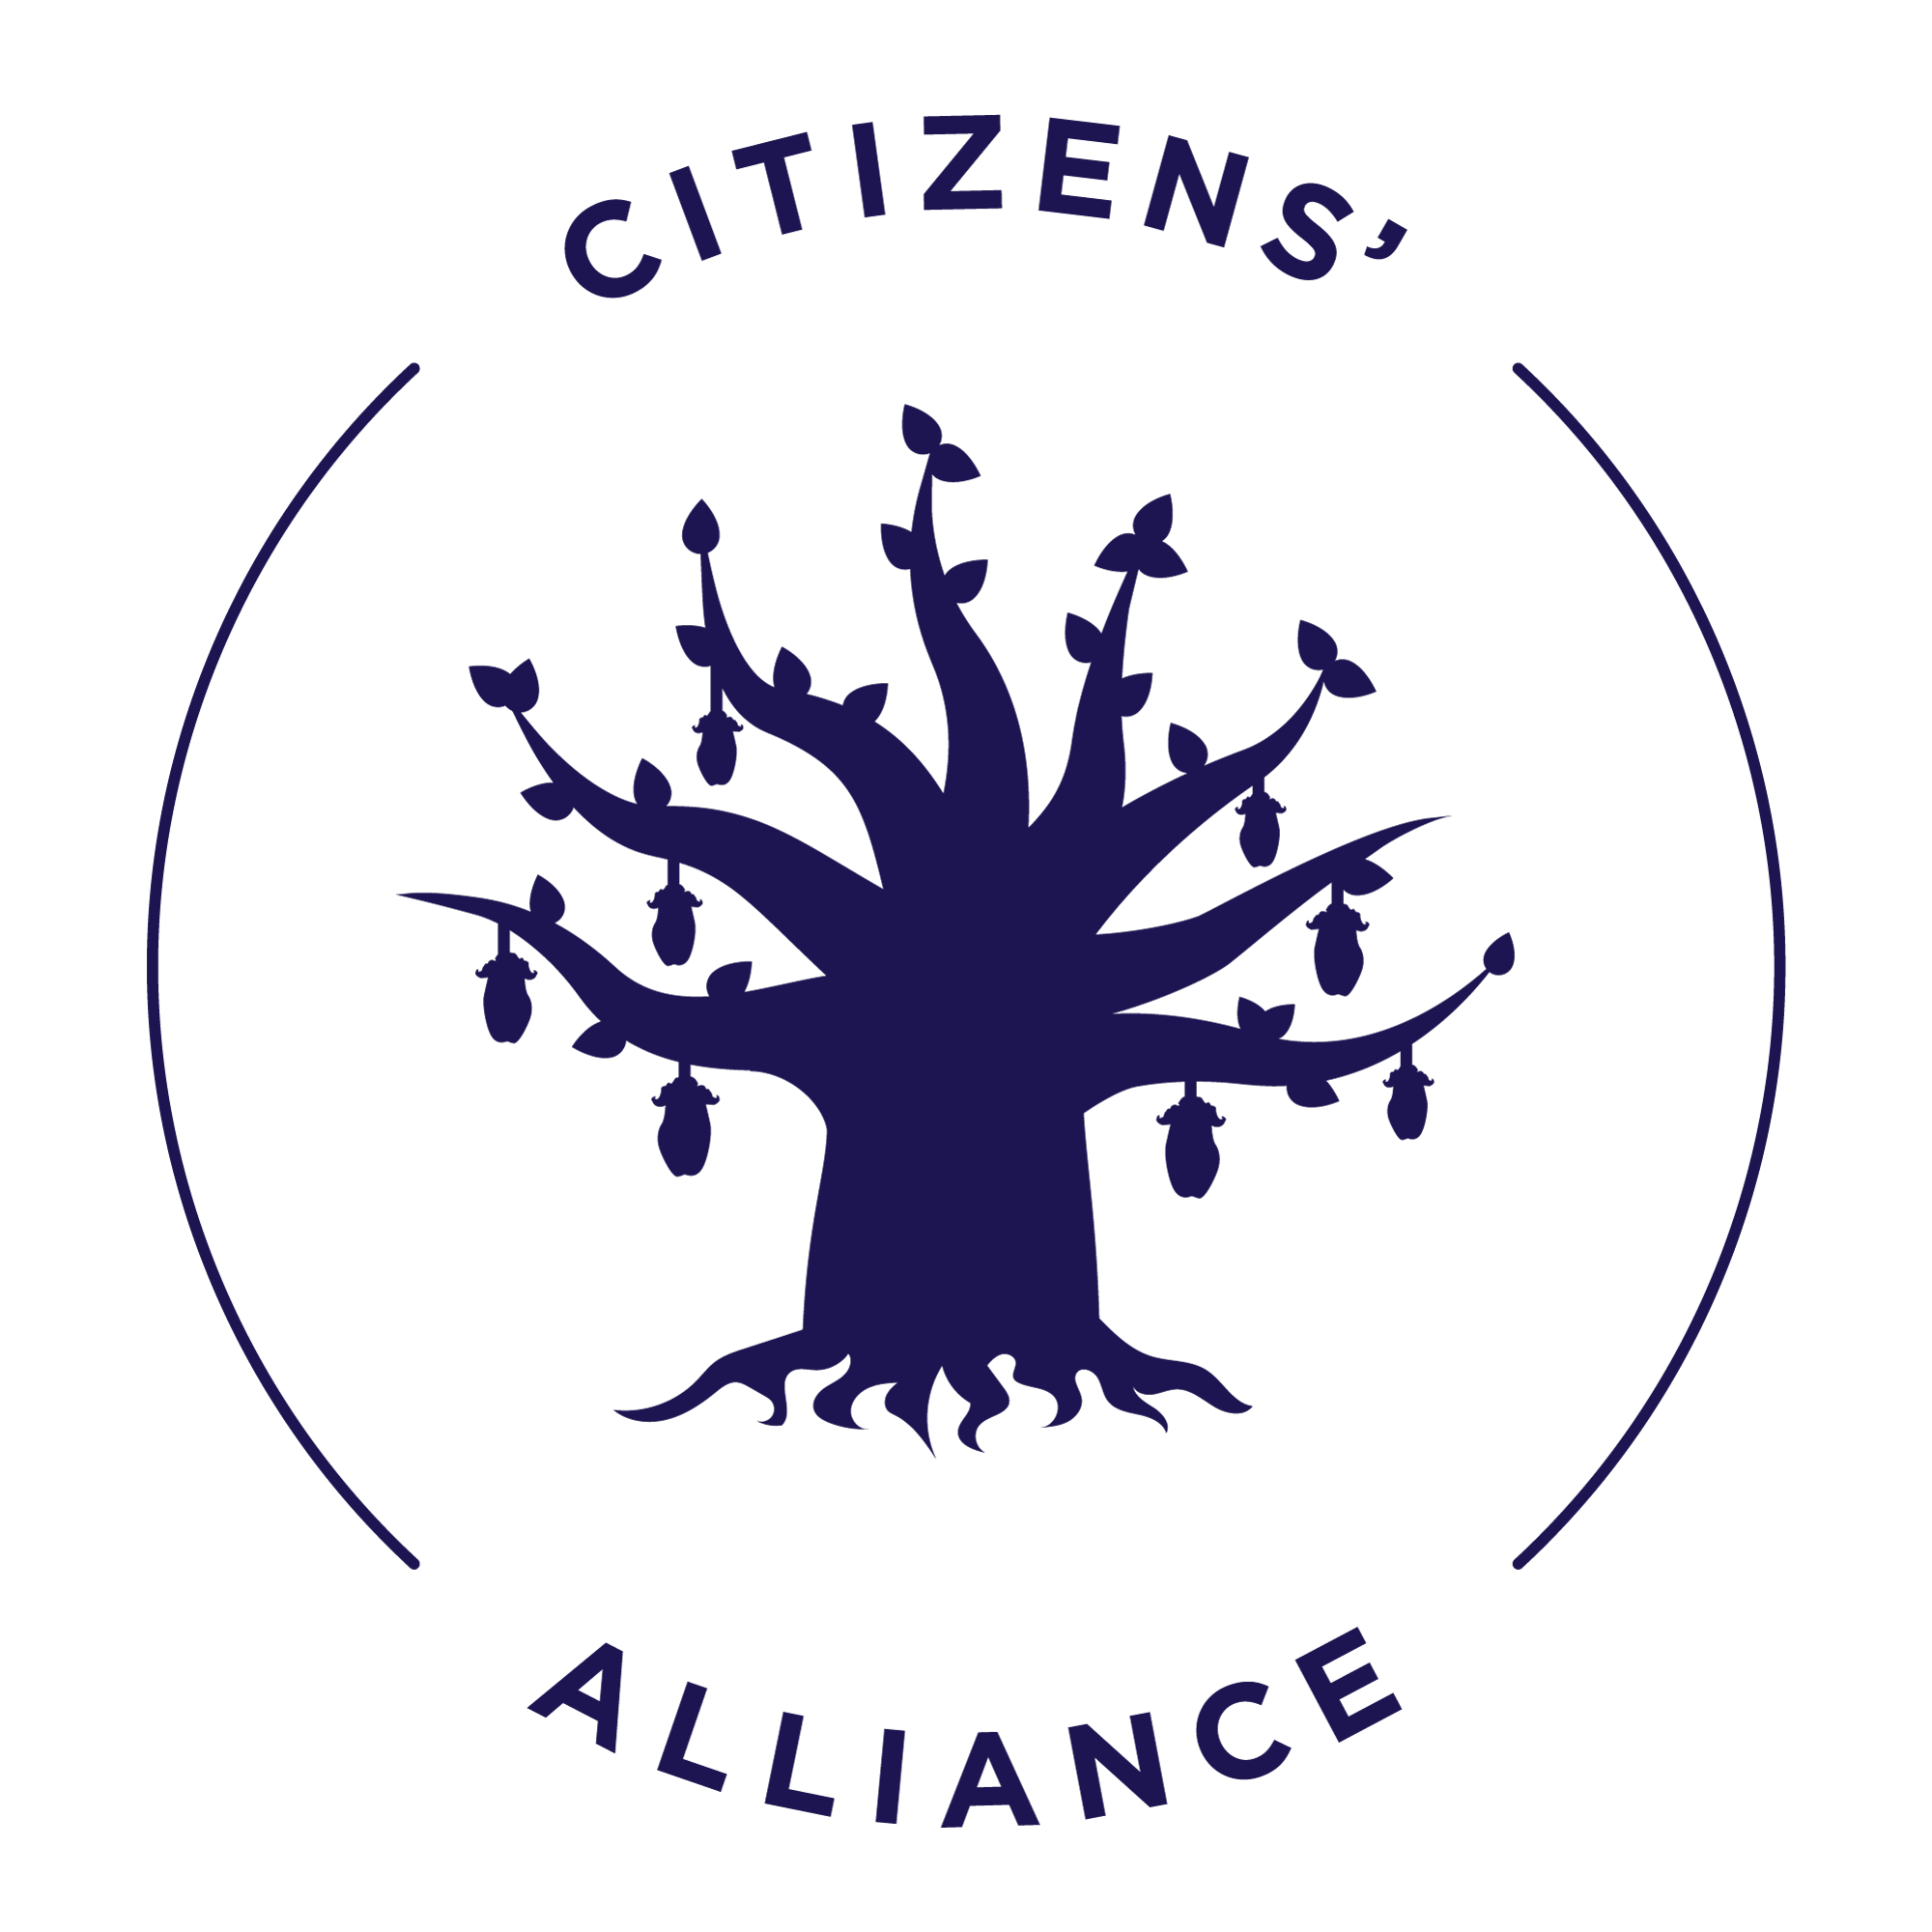 Citizens Alliance